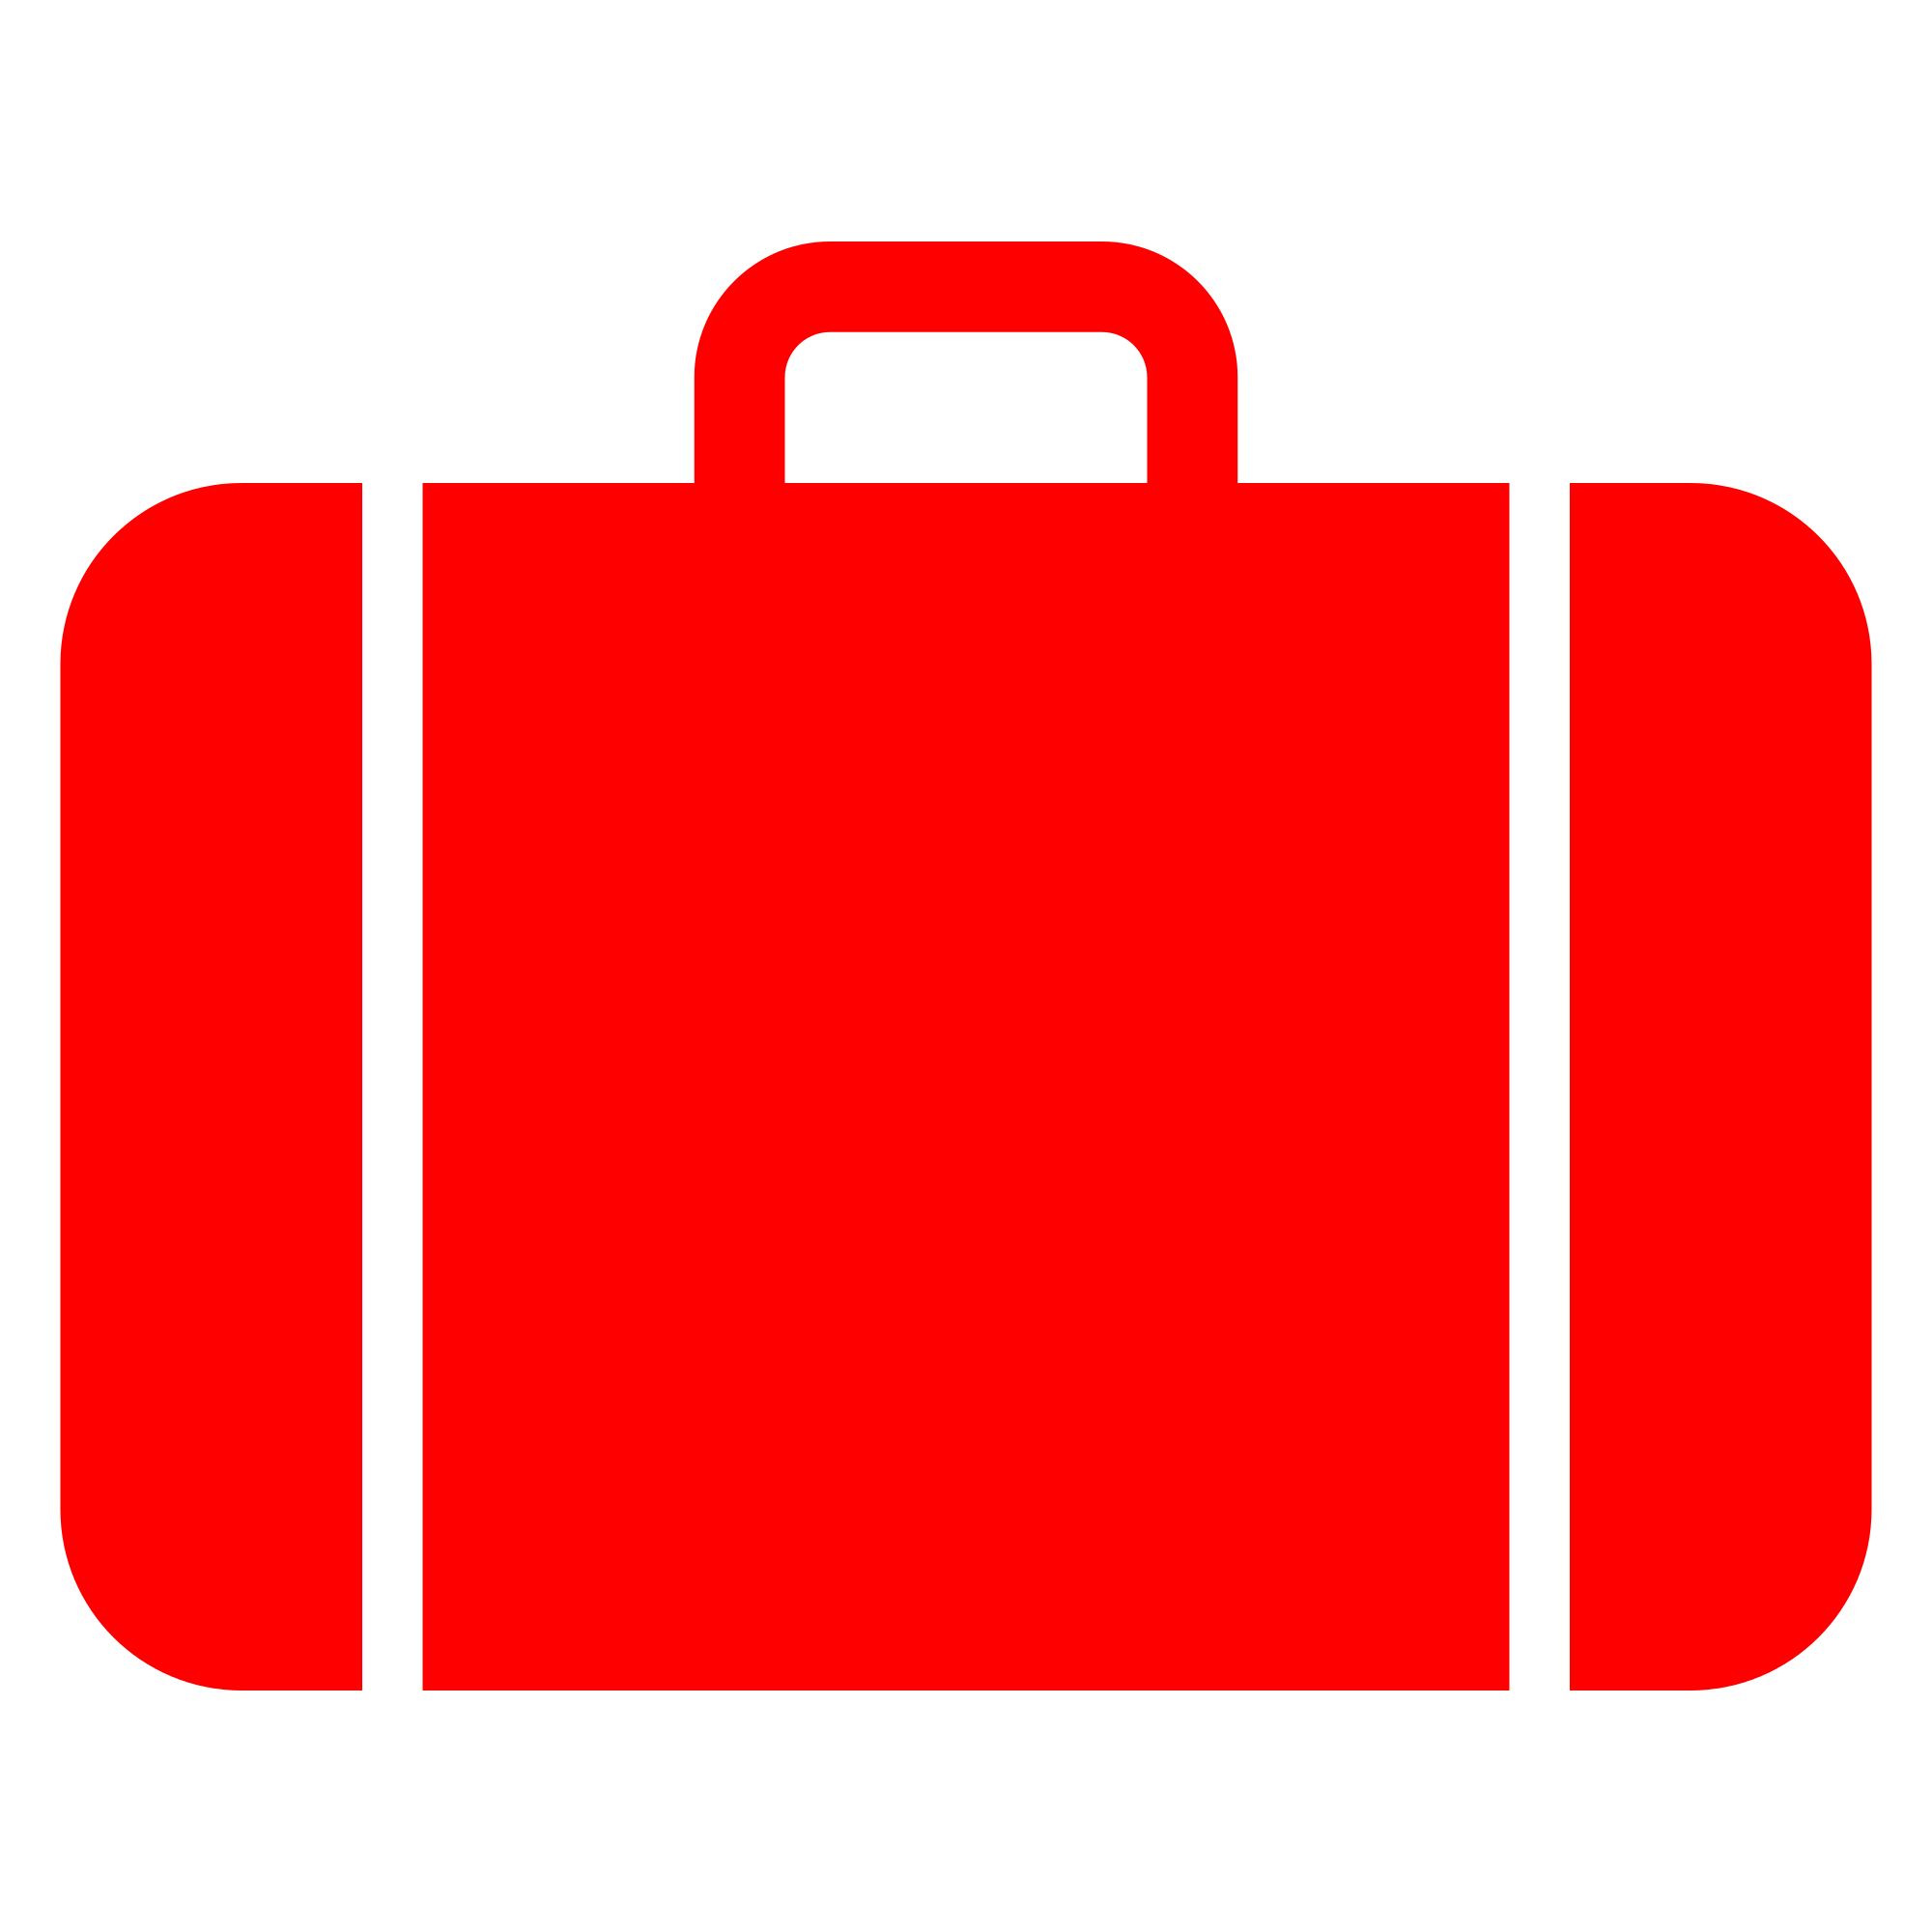 File suitcase icon red. Luggage clipart work bag